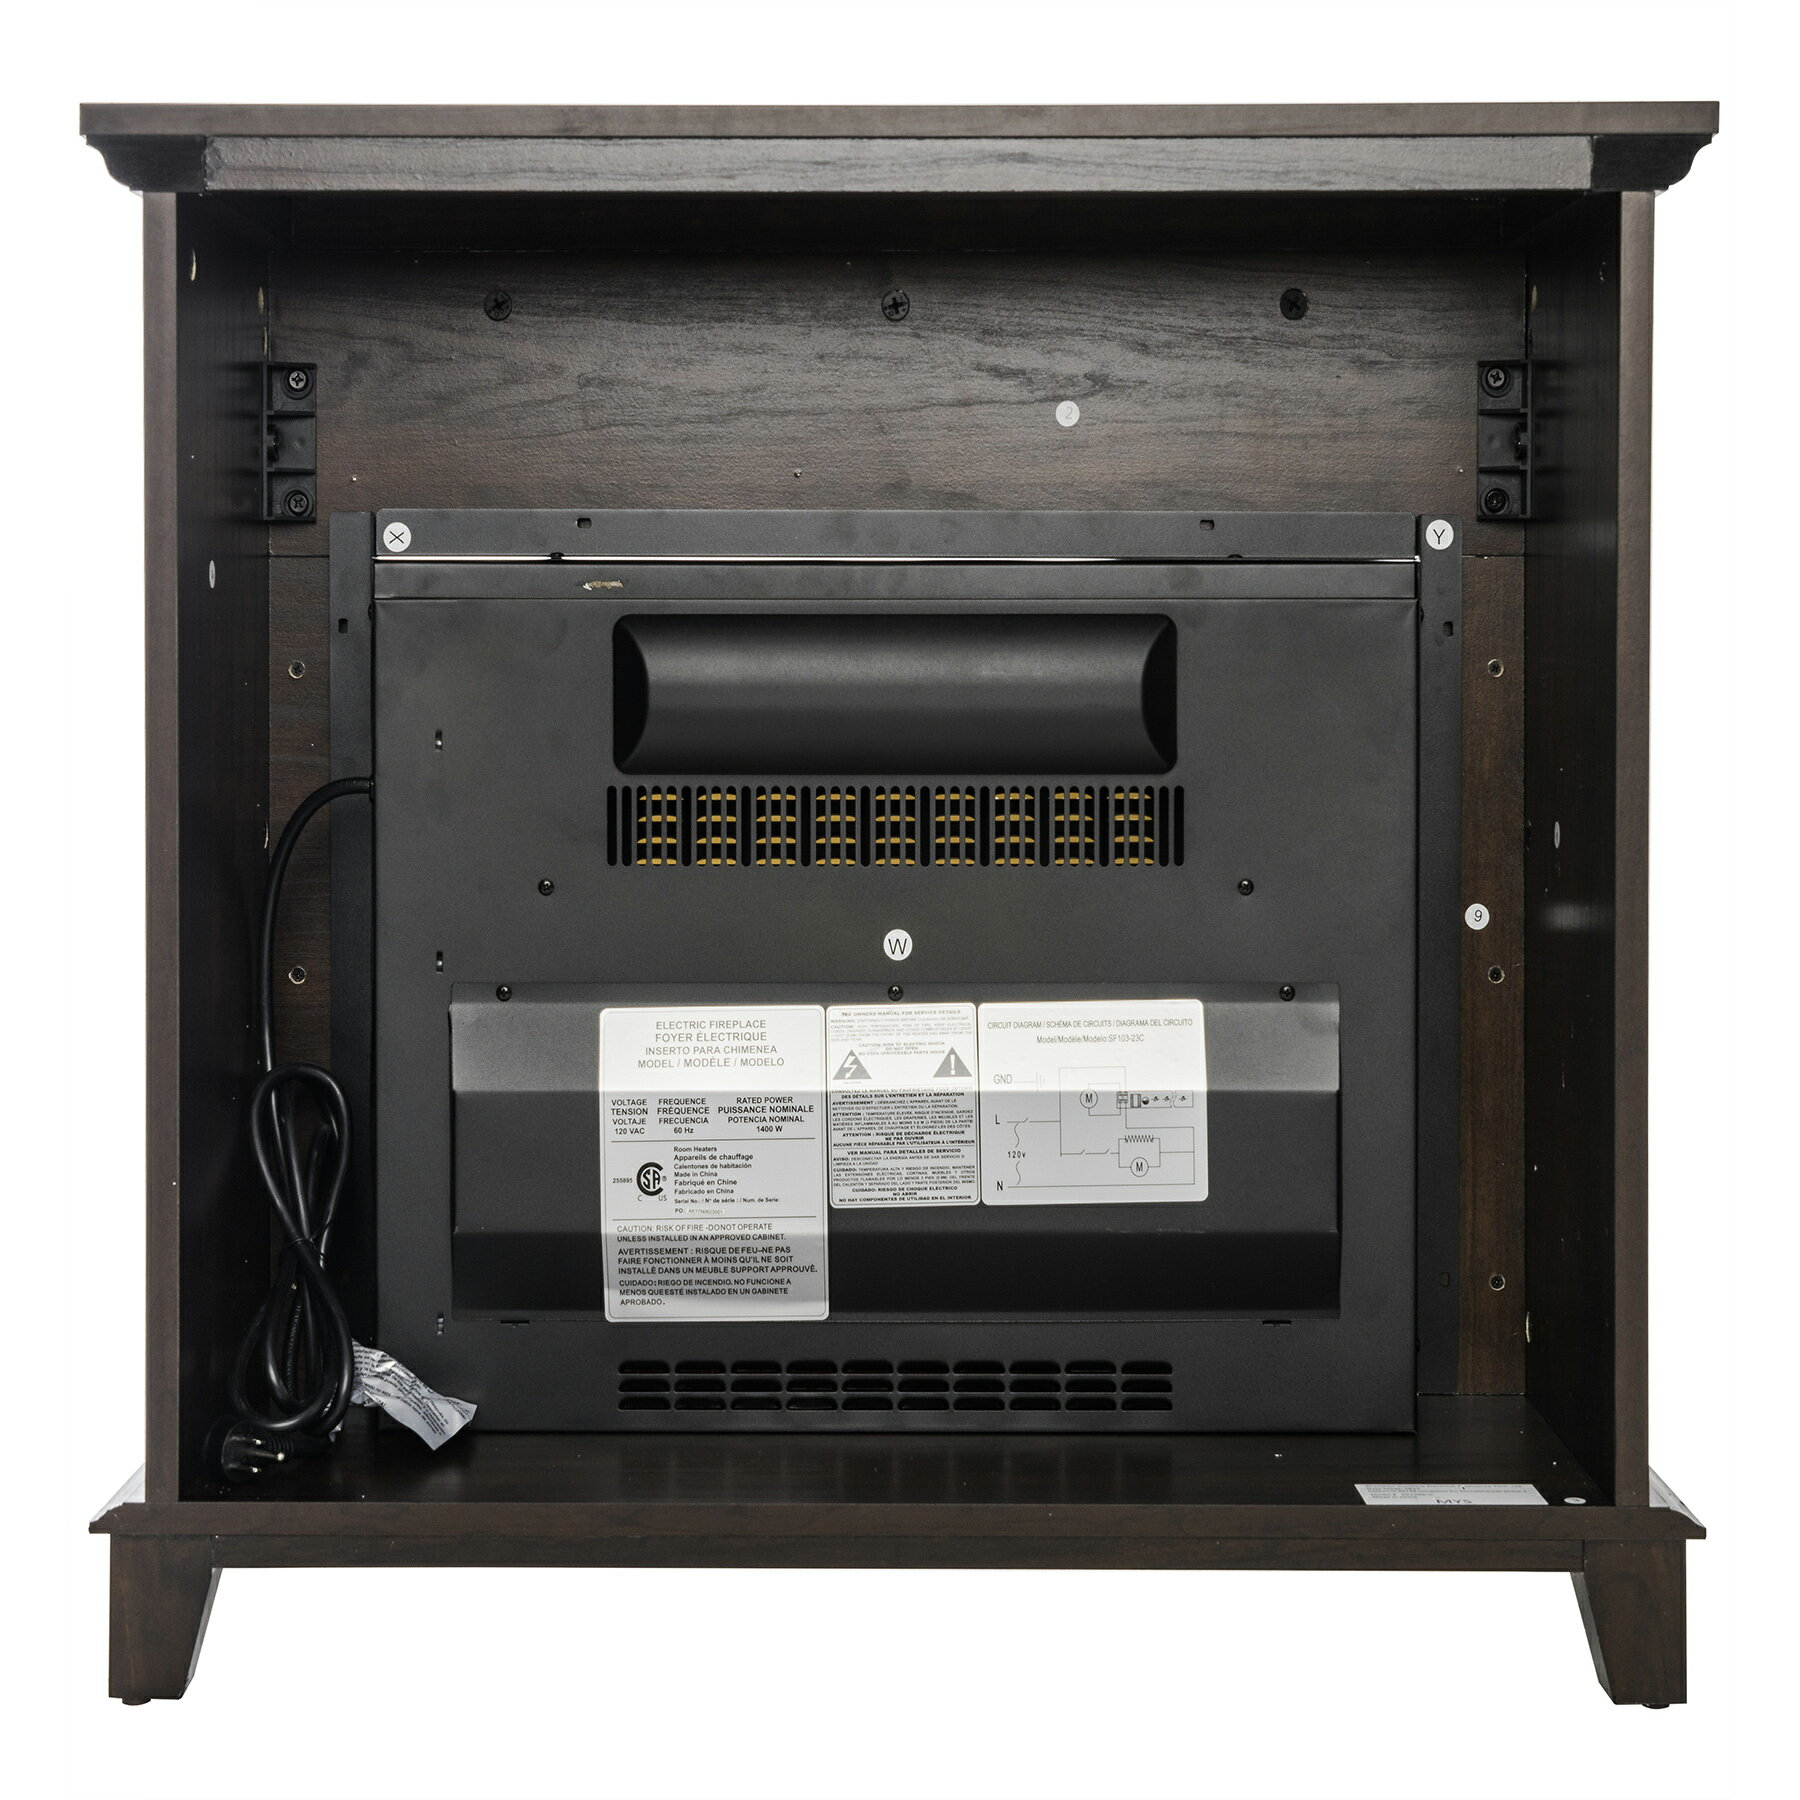 "AKDY 27"" Freestanding Wooden Mantel Electric Fireplace Stove Heater 5"